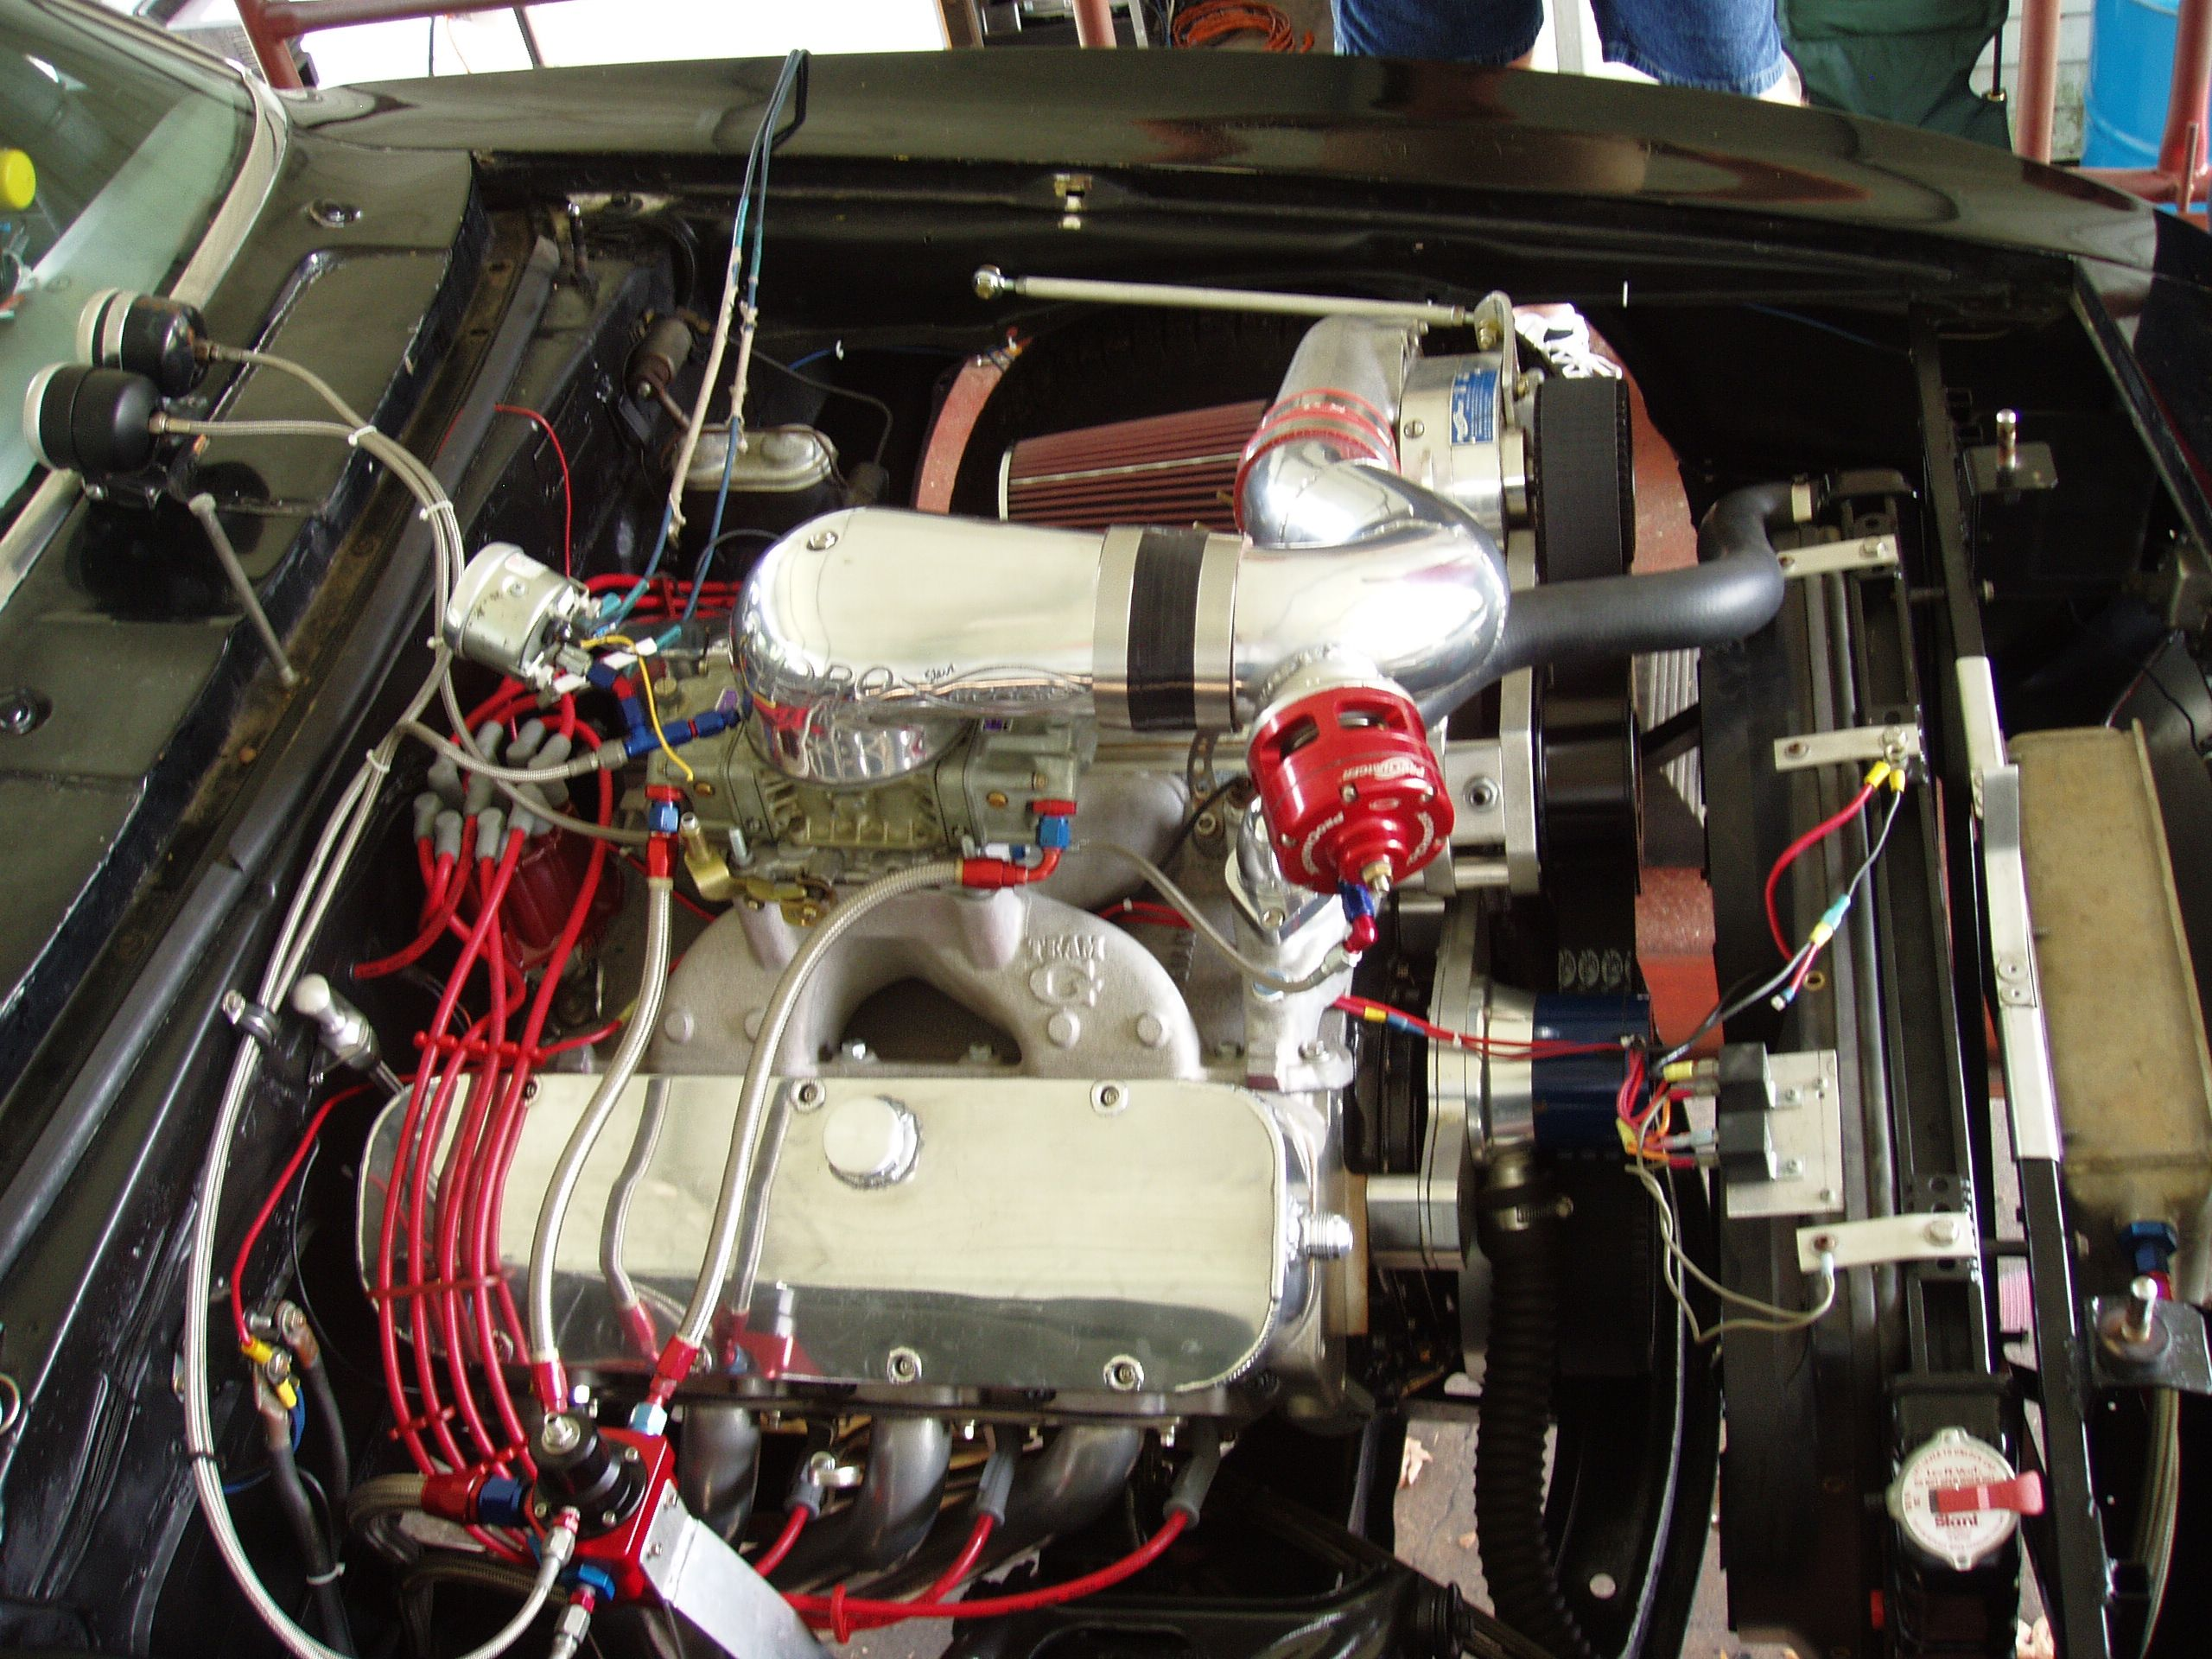 Rollins Automotive shop 1967 Chevrolet Camaro, powered by a